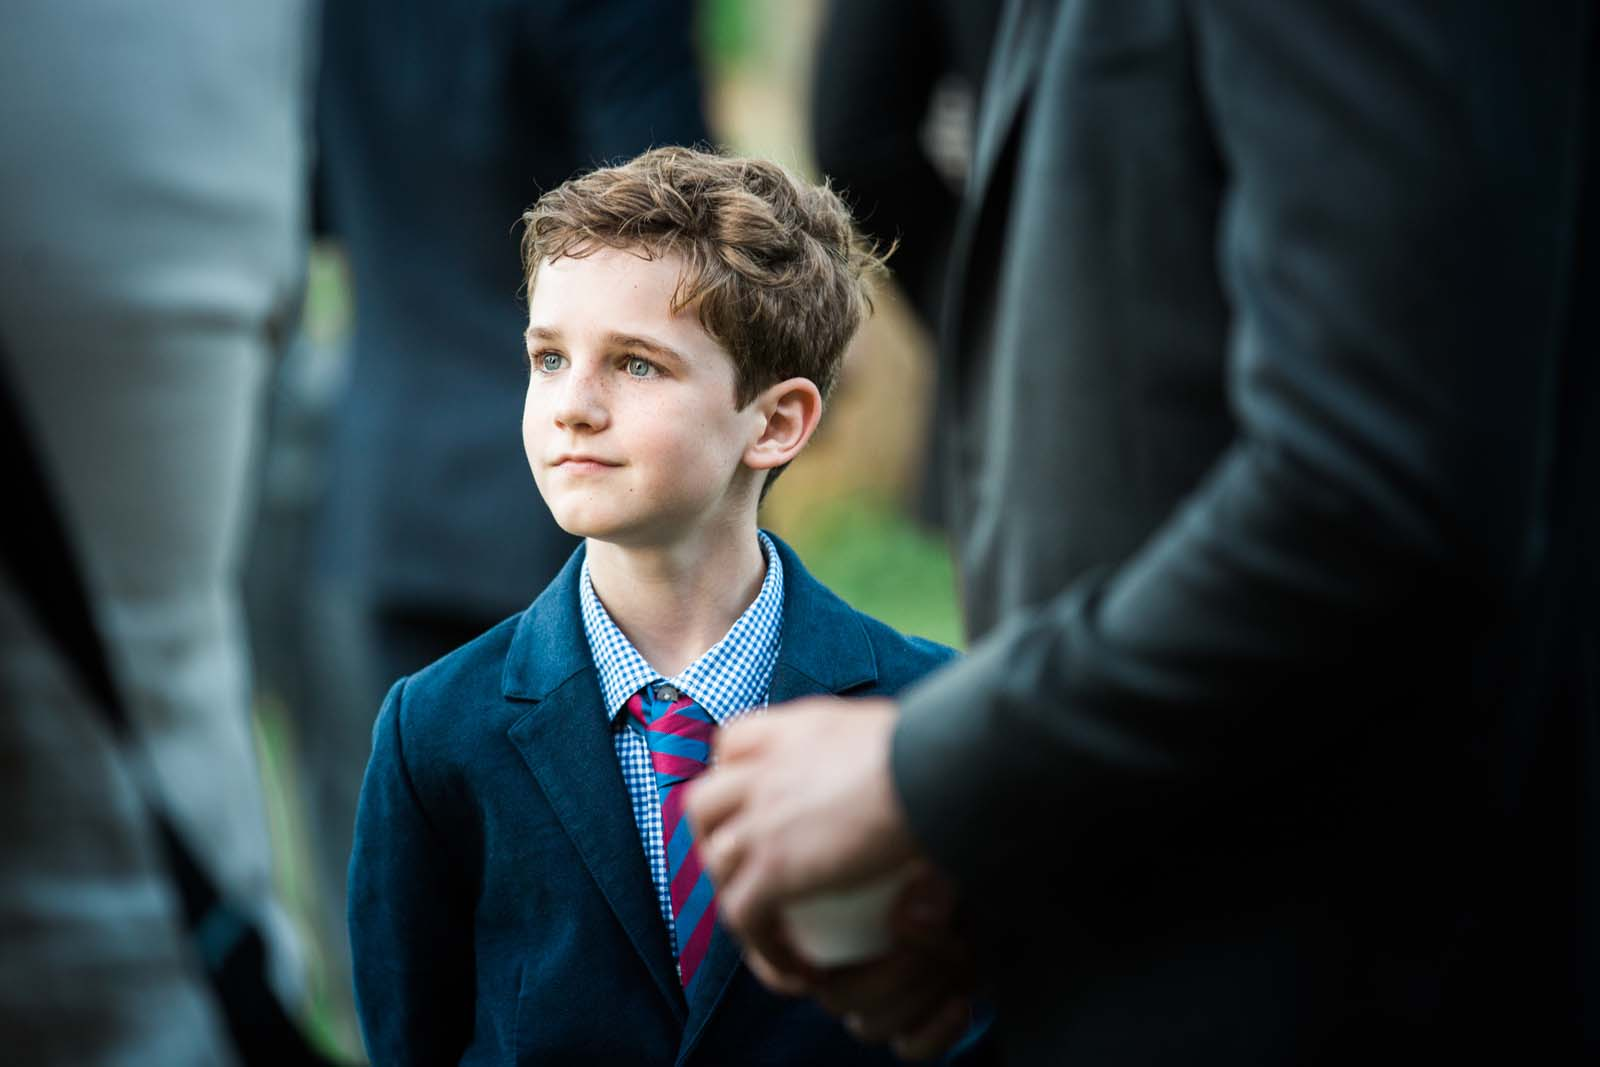 Notley Abbey Wedding Young Guest Buckinghamshire